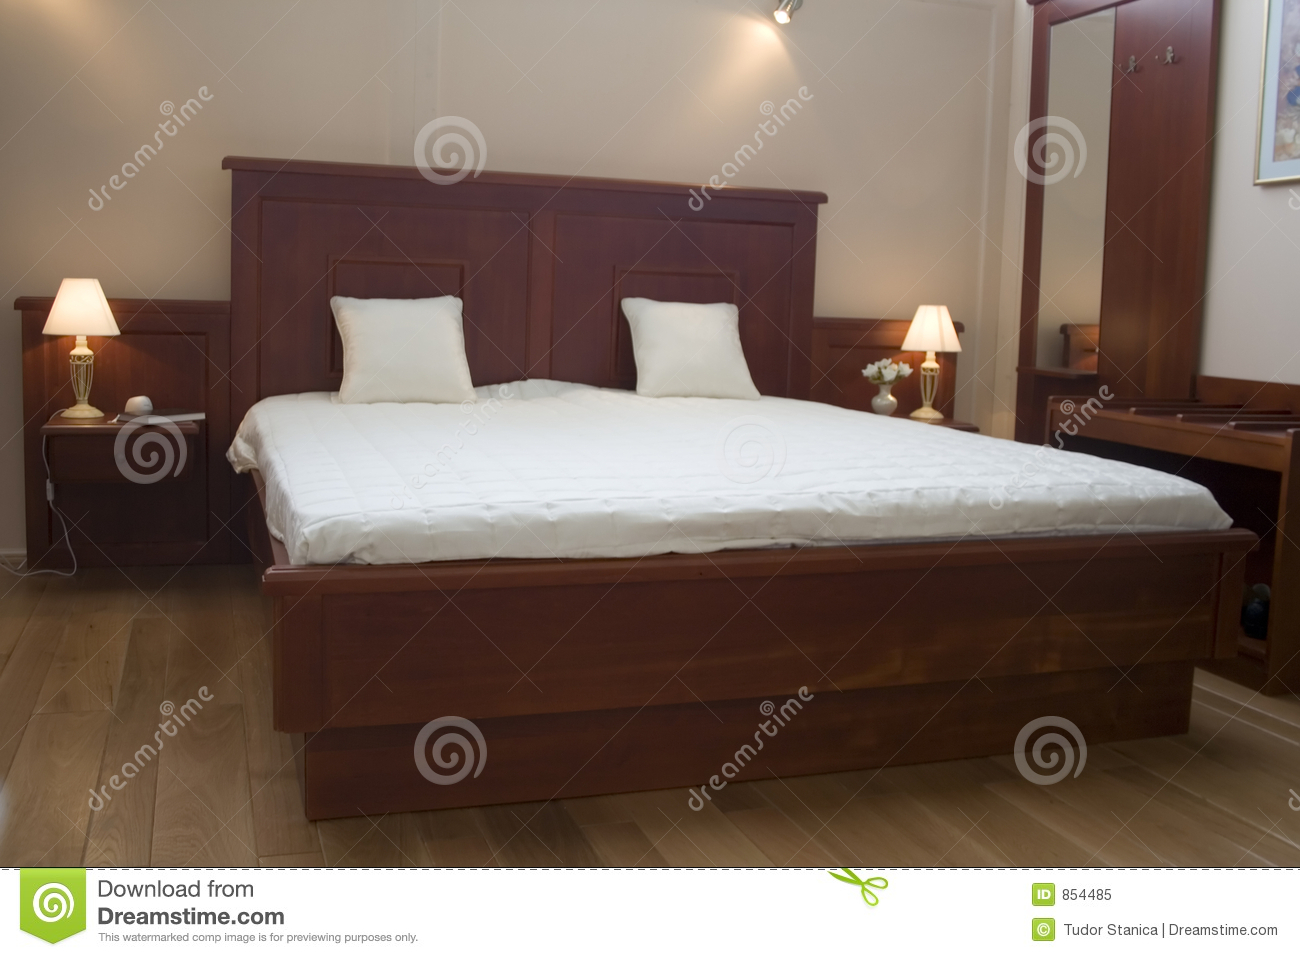 Mob lia do quarto foto de stock royalty free imagem 854485 for Mobilia internet